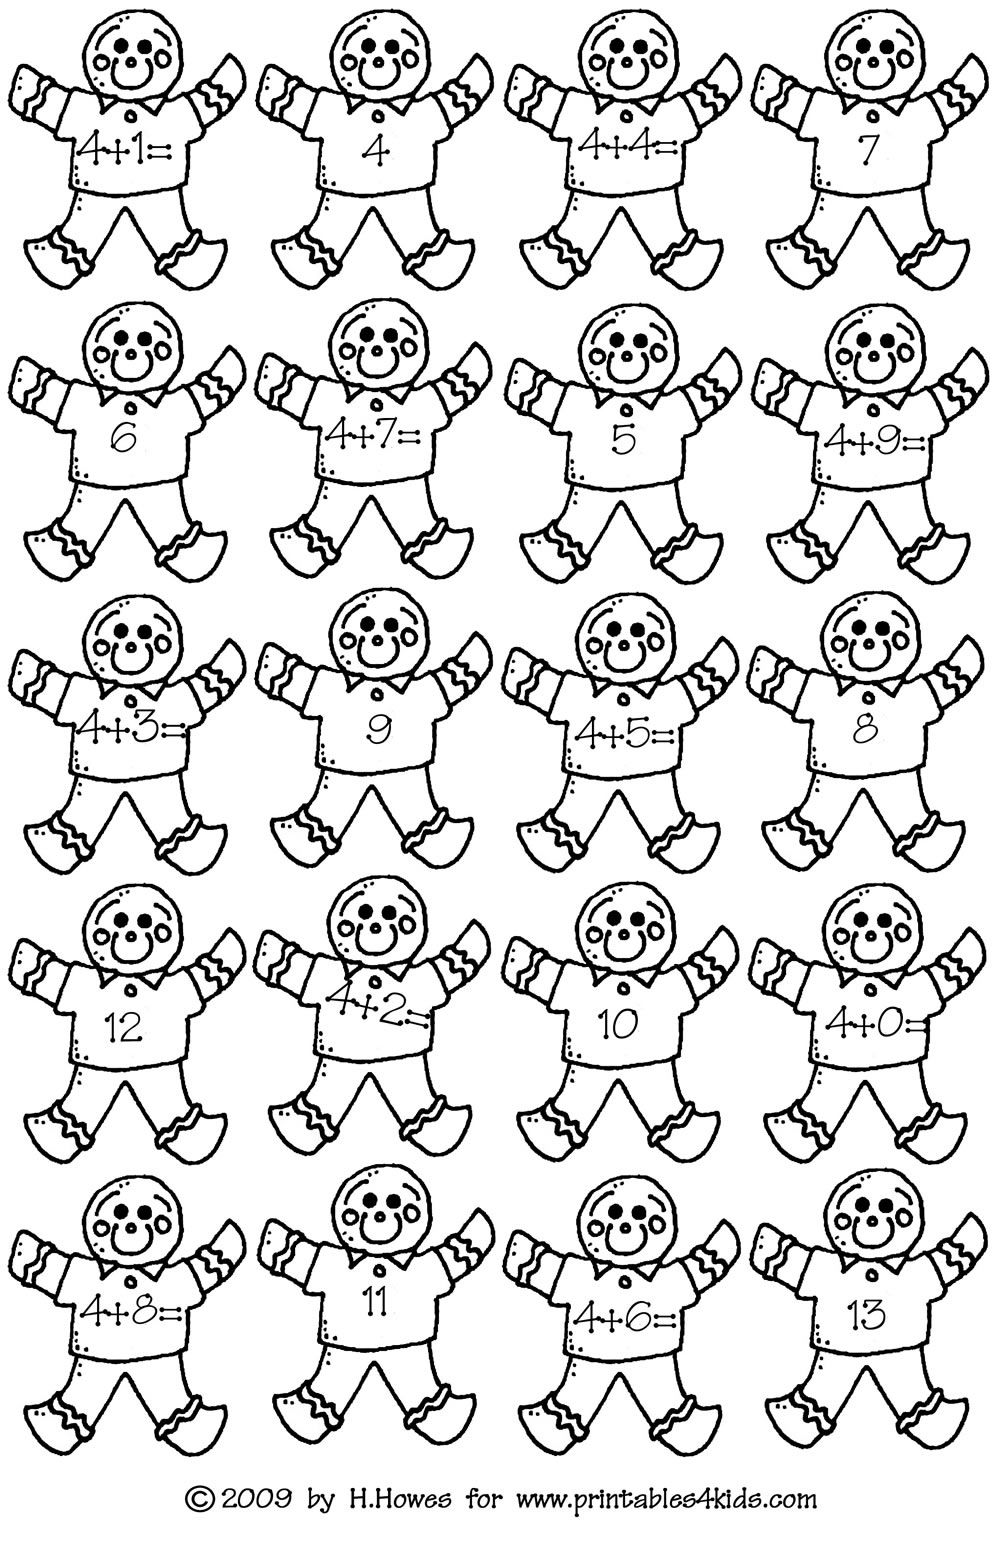 Gingerbread Math Addition Facts 4s : Printables for Kids